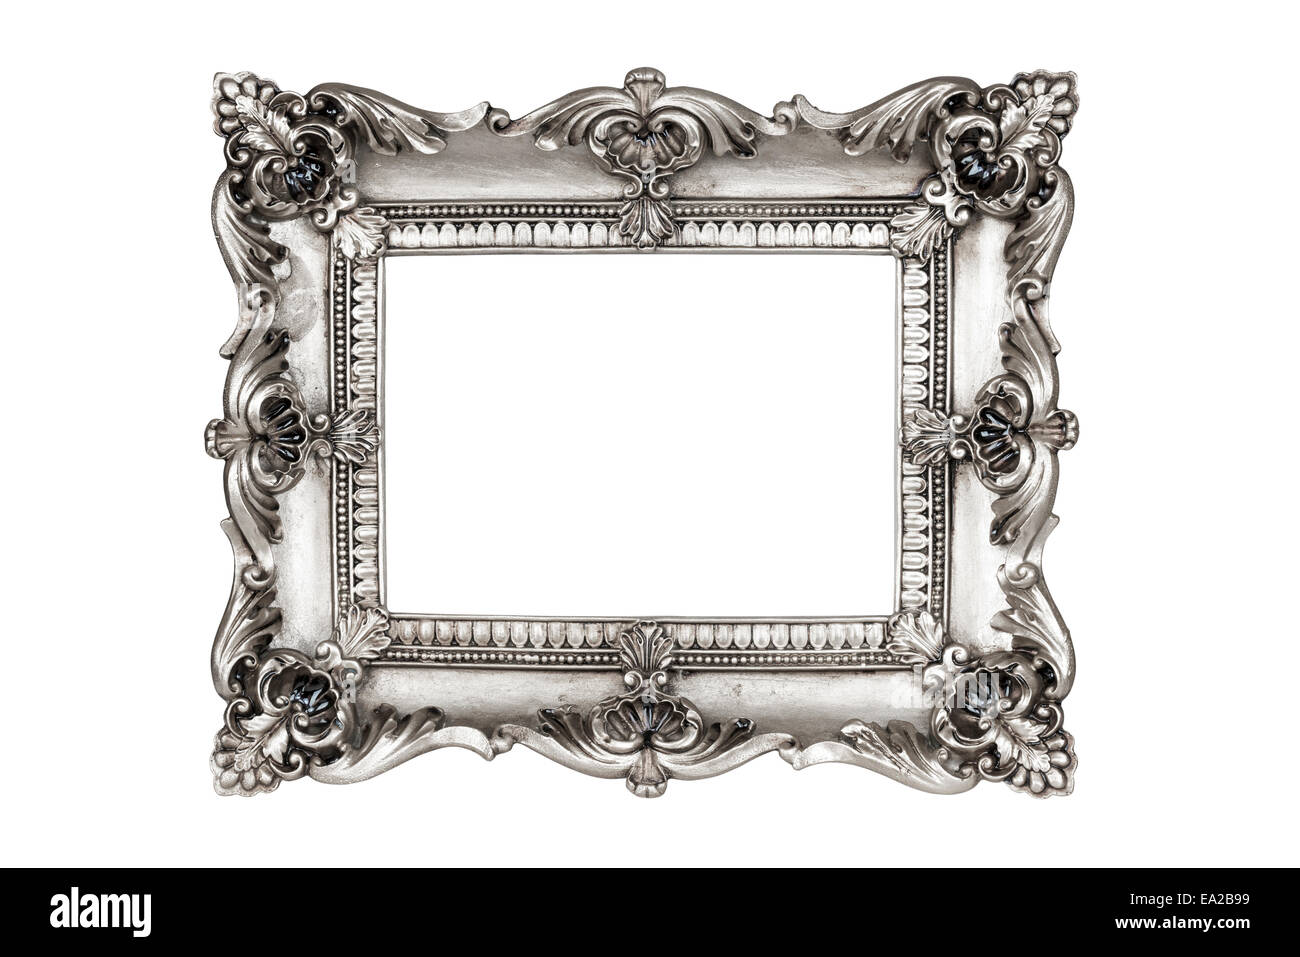 Old antique silver picture frames. Isolated on white background with ...